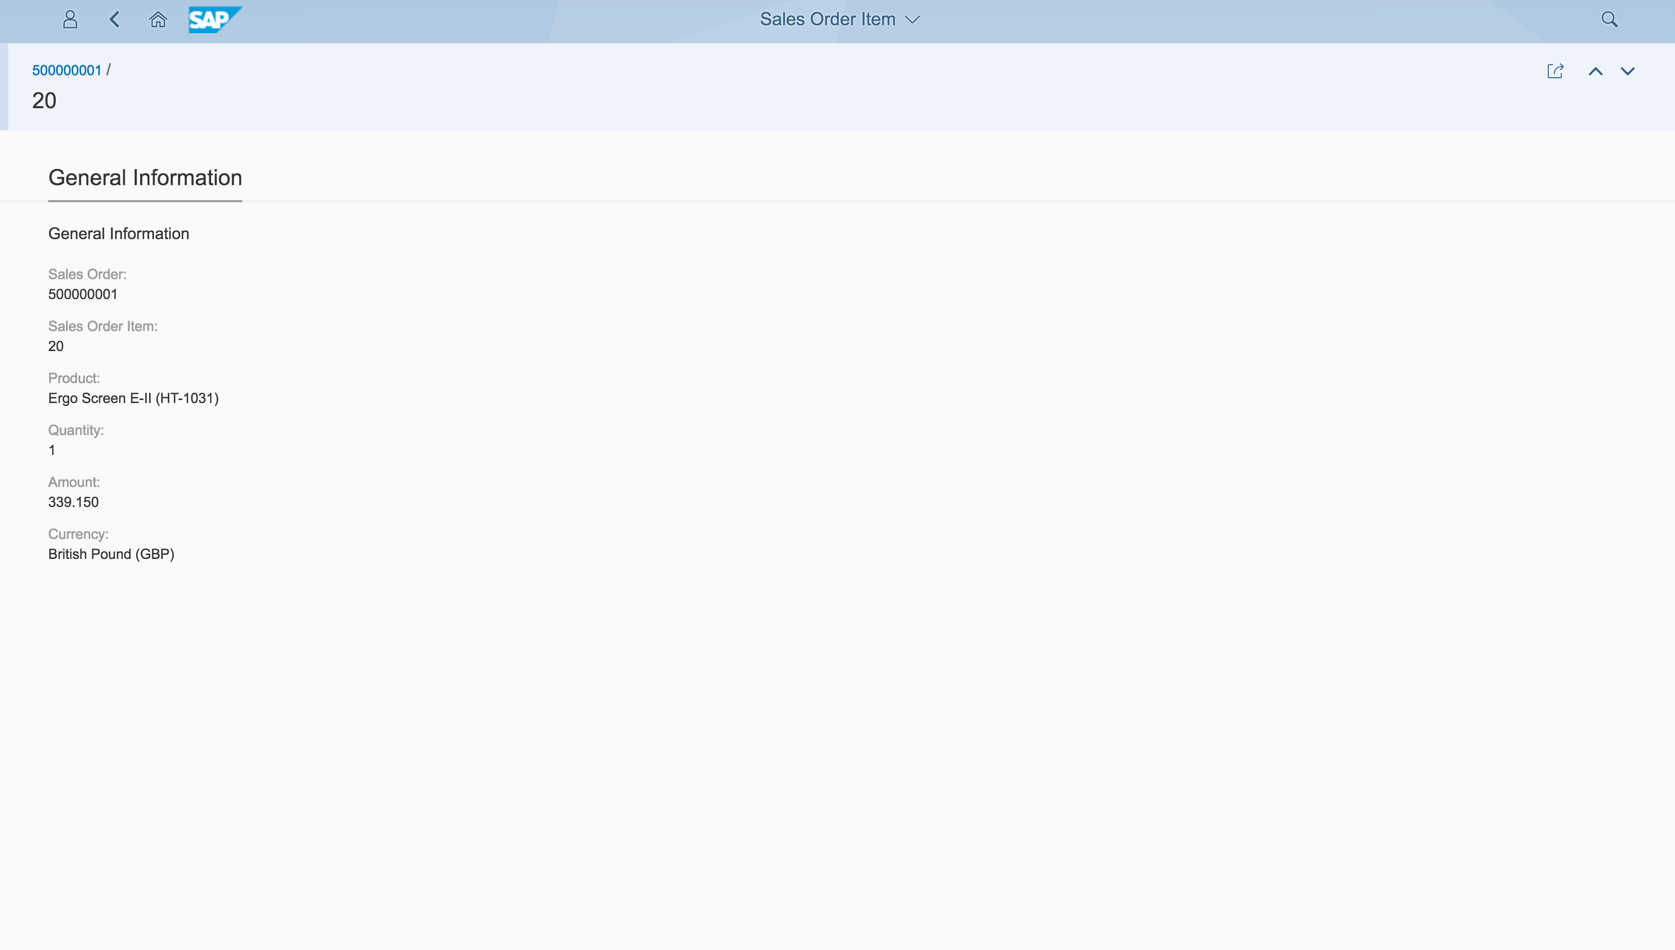 Fiori elements – Turn your List Report into a Master-Master-Detail